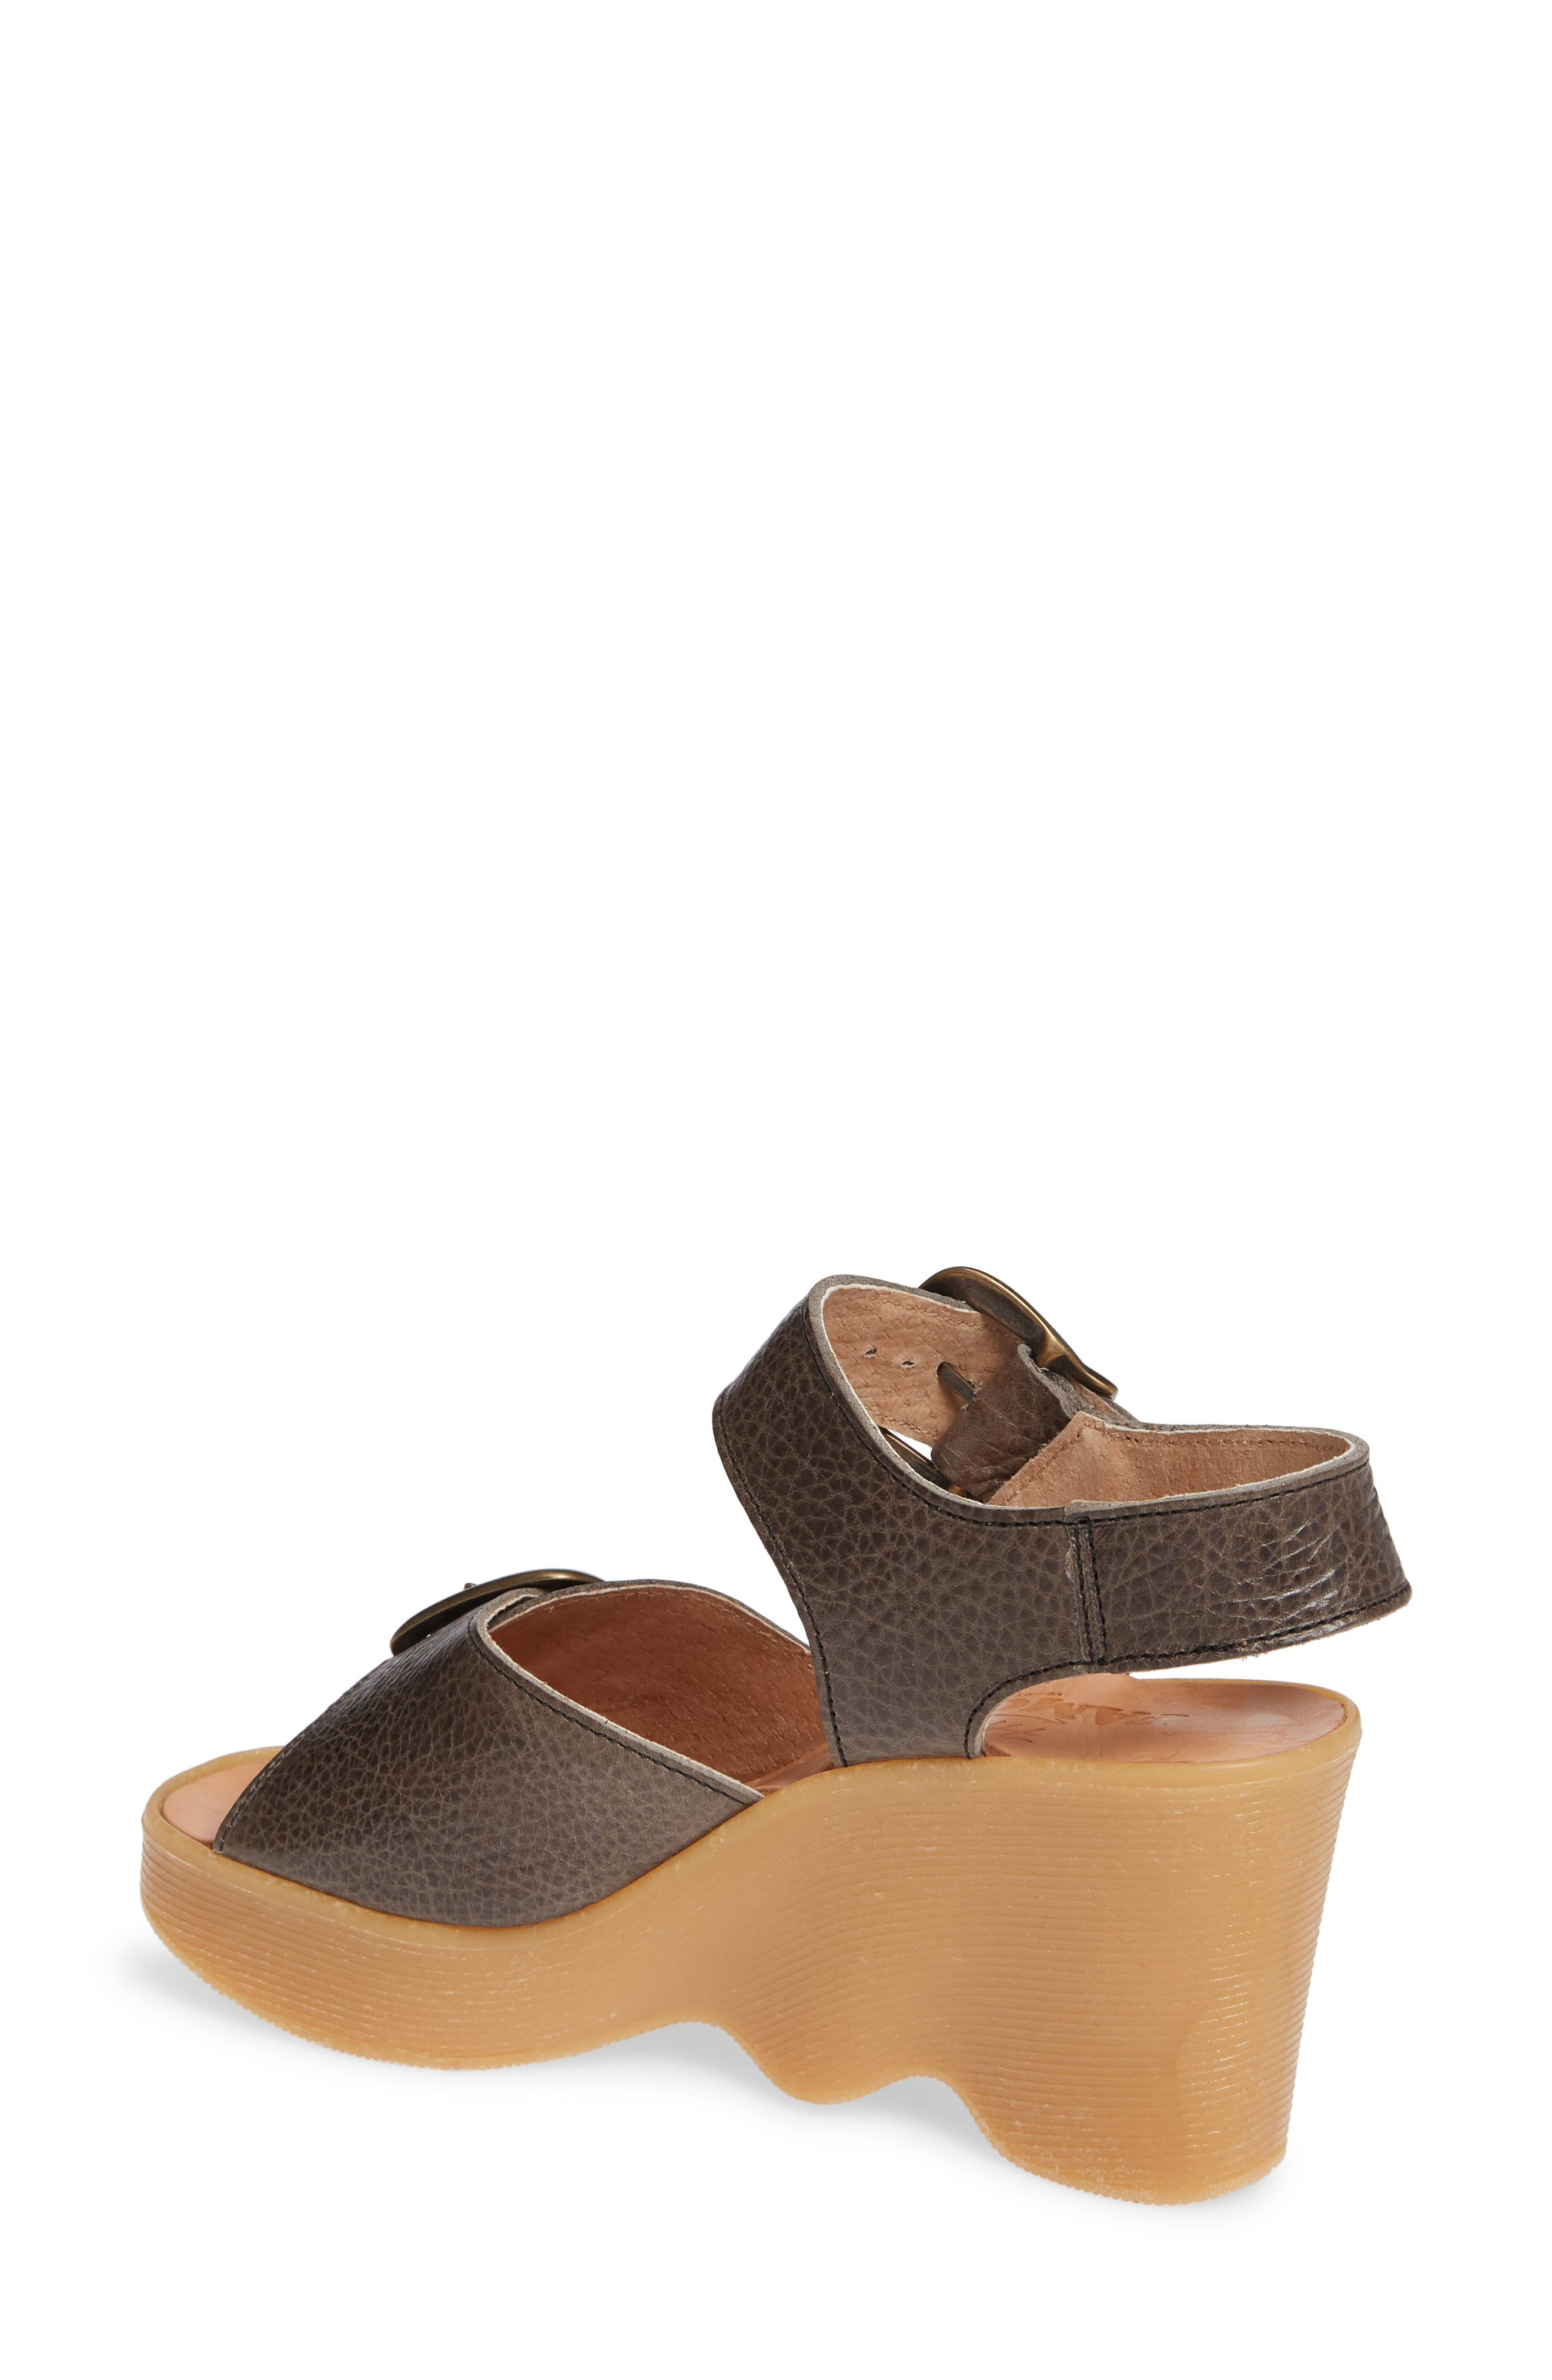 Double Vision Wedge Sandal,                             Alternate thumbnail 2, color,                             STEEL LEATHER